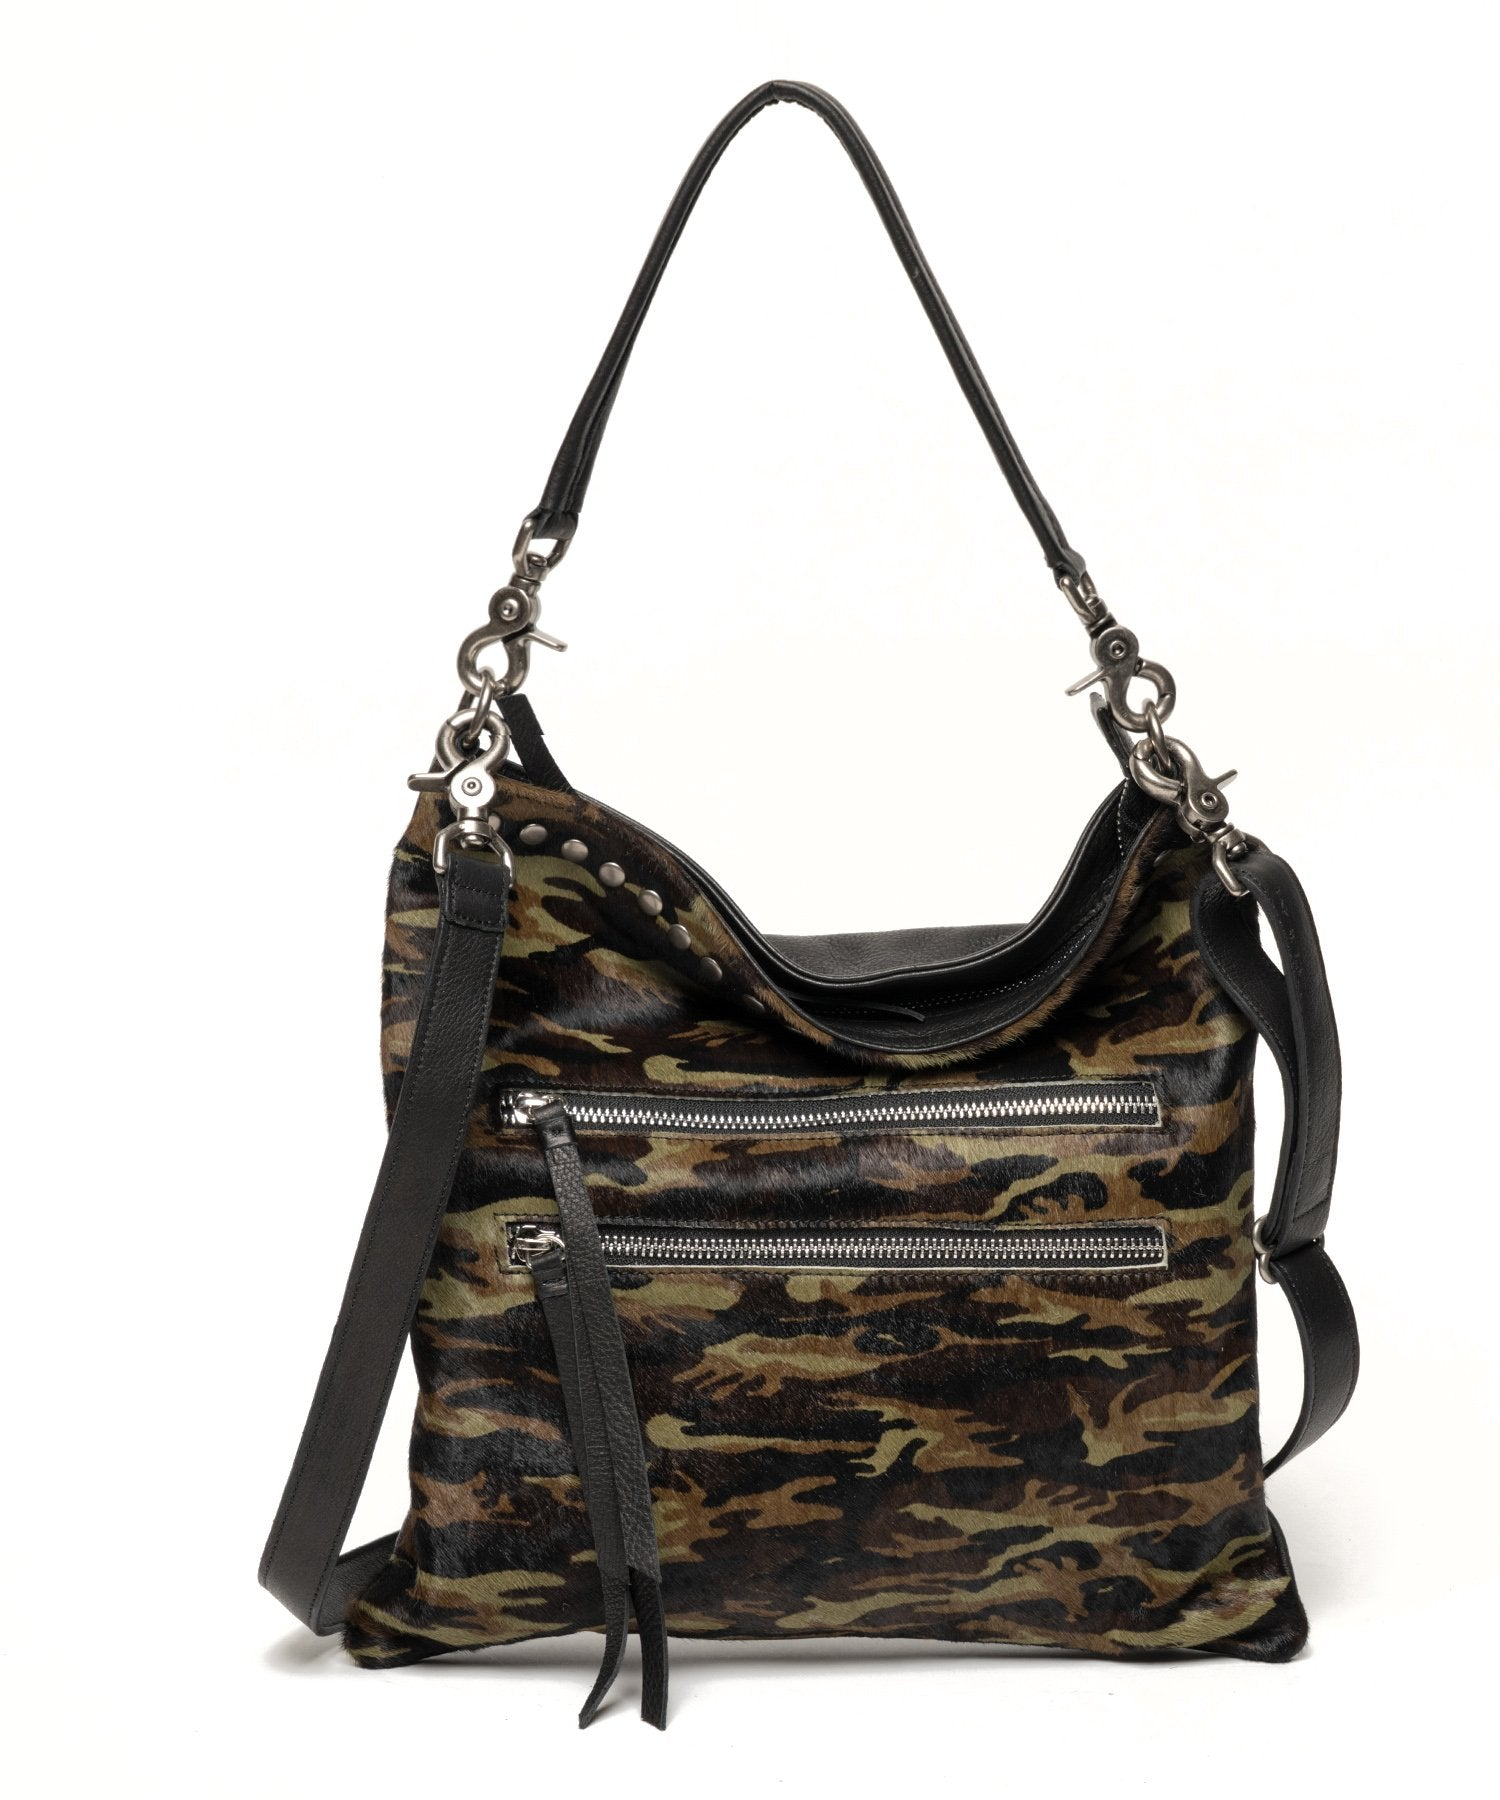 The Paige | Camo Hair - Susie O's Handbags